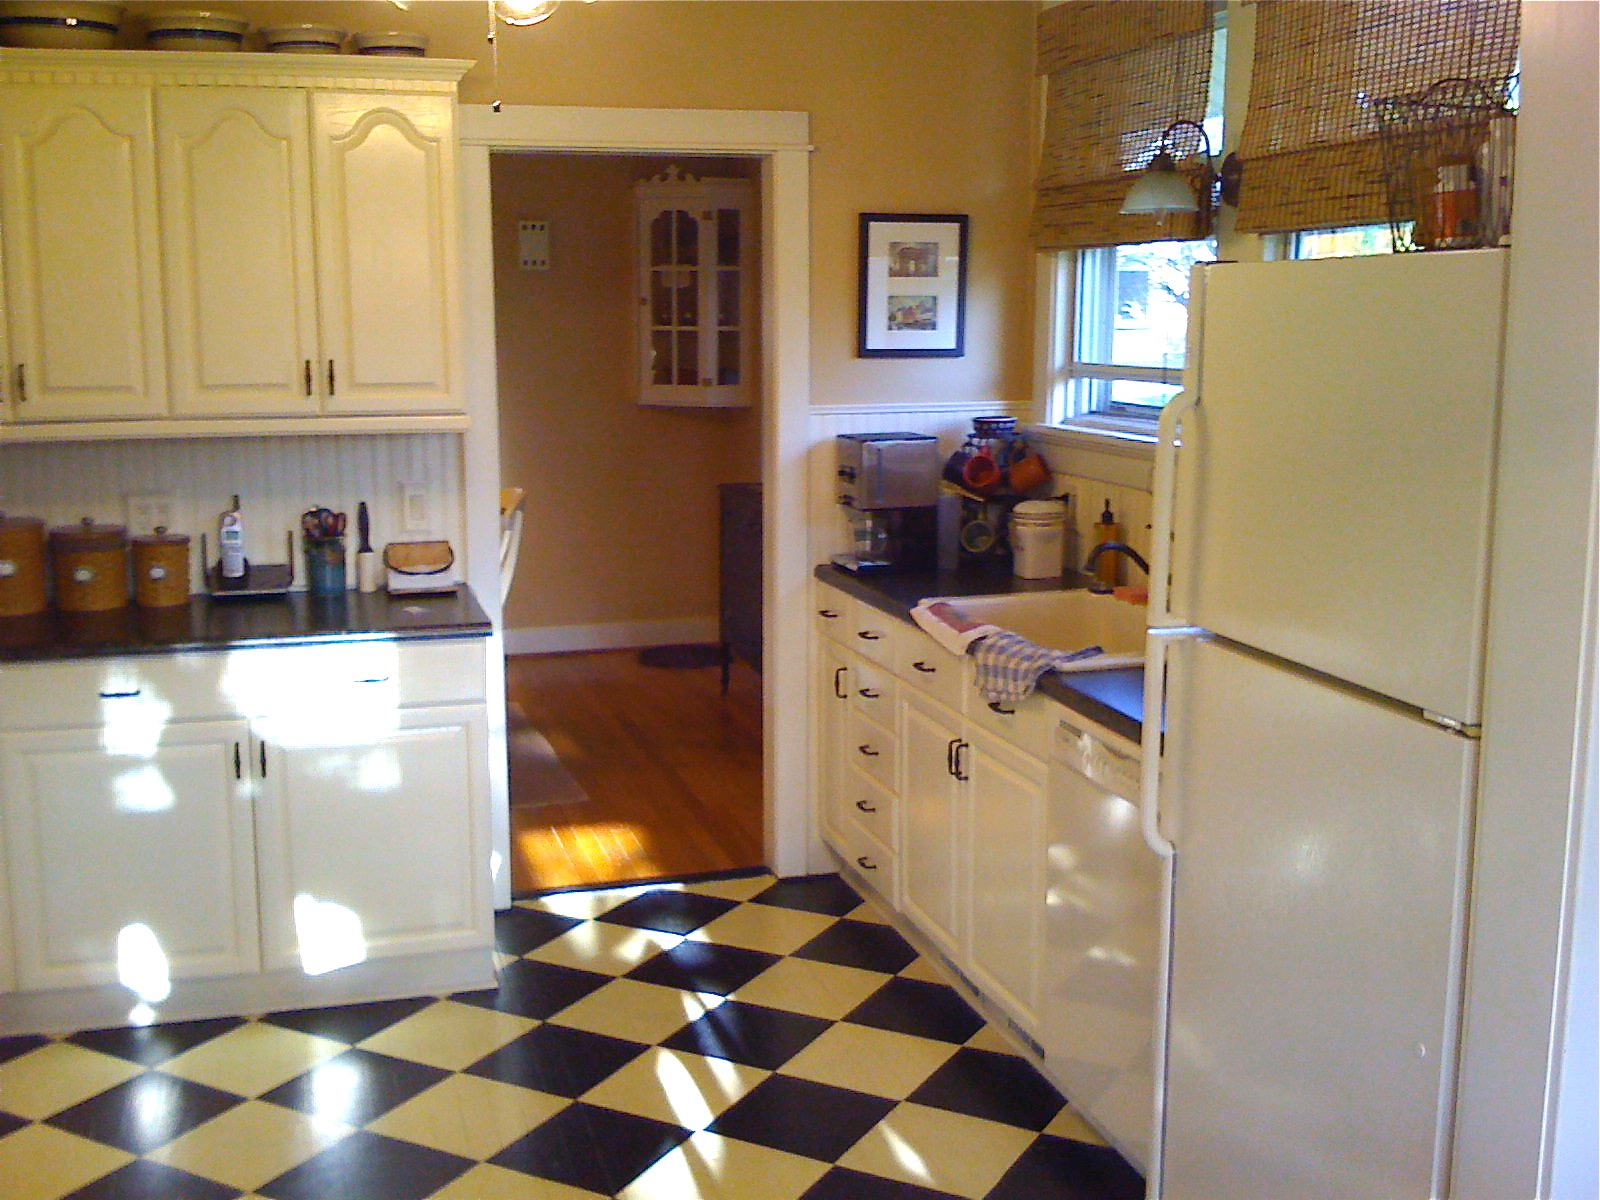 kitchen design dayton ohio furniture for small our diy remodel - the brauns wedding ...